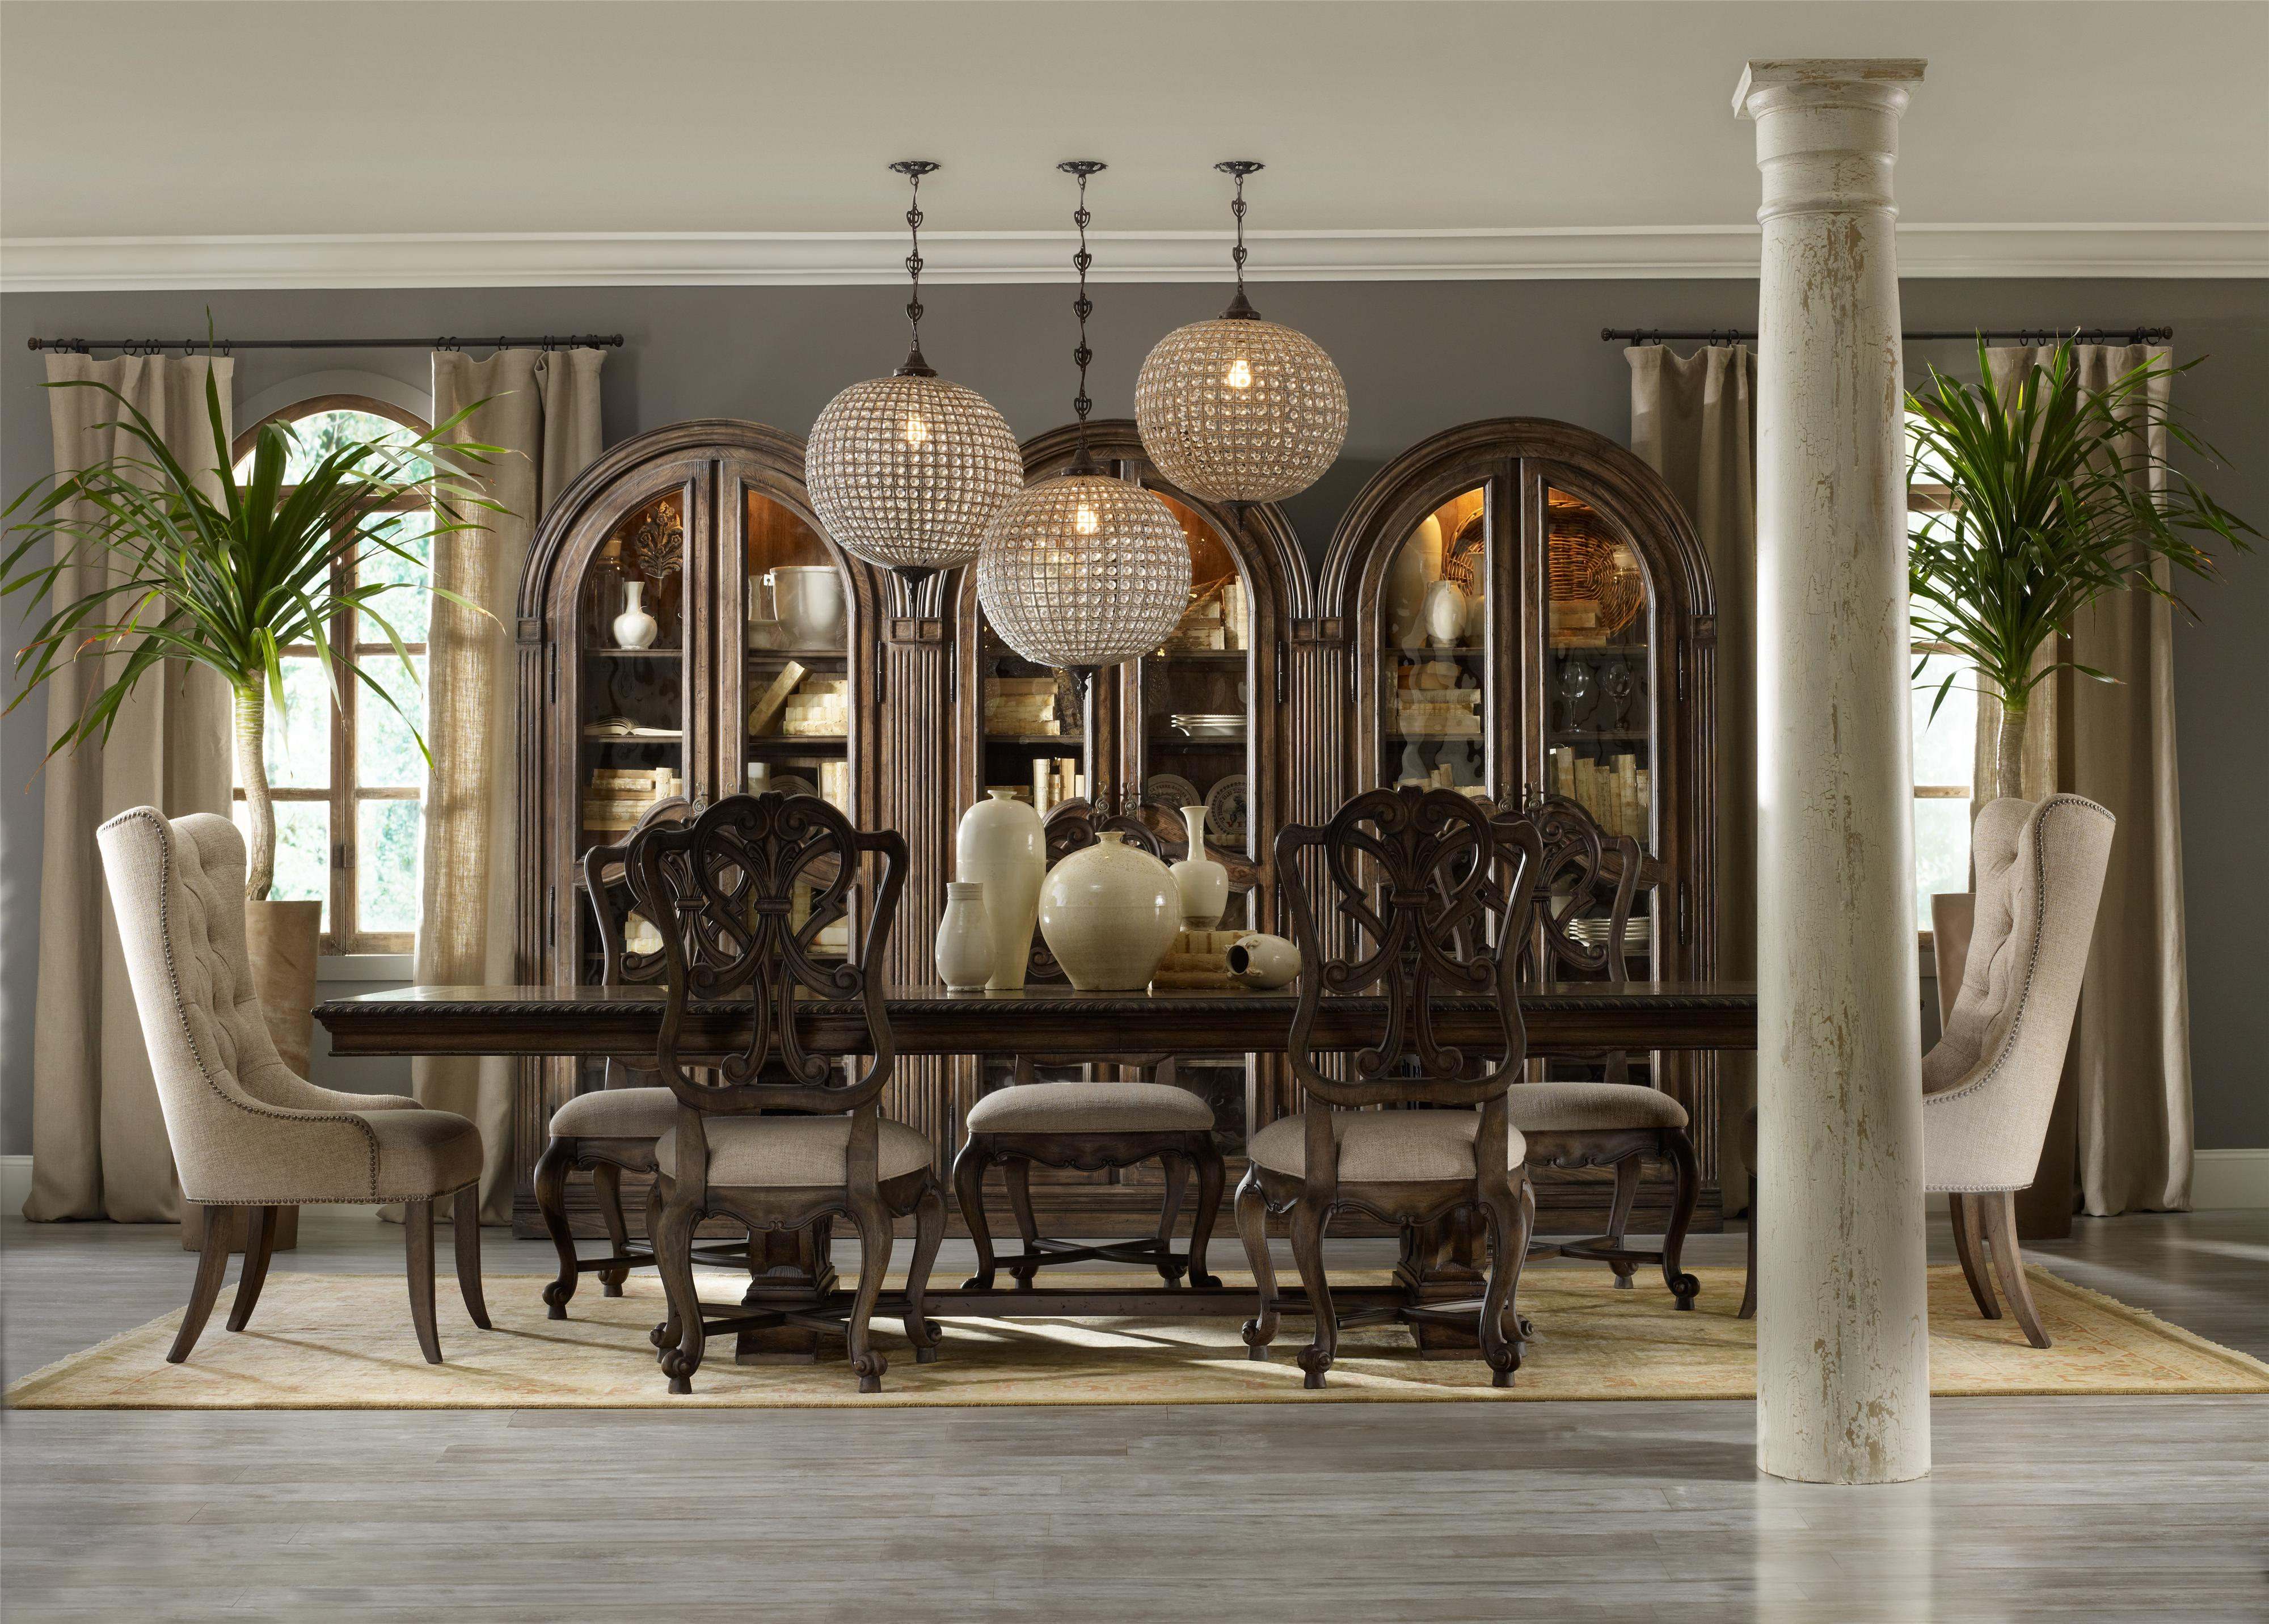 Hooker Furniture Rhapsody Formal Dining Room Group - Item Number: 5070 F Dining Room Group 1